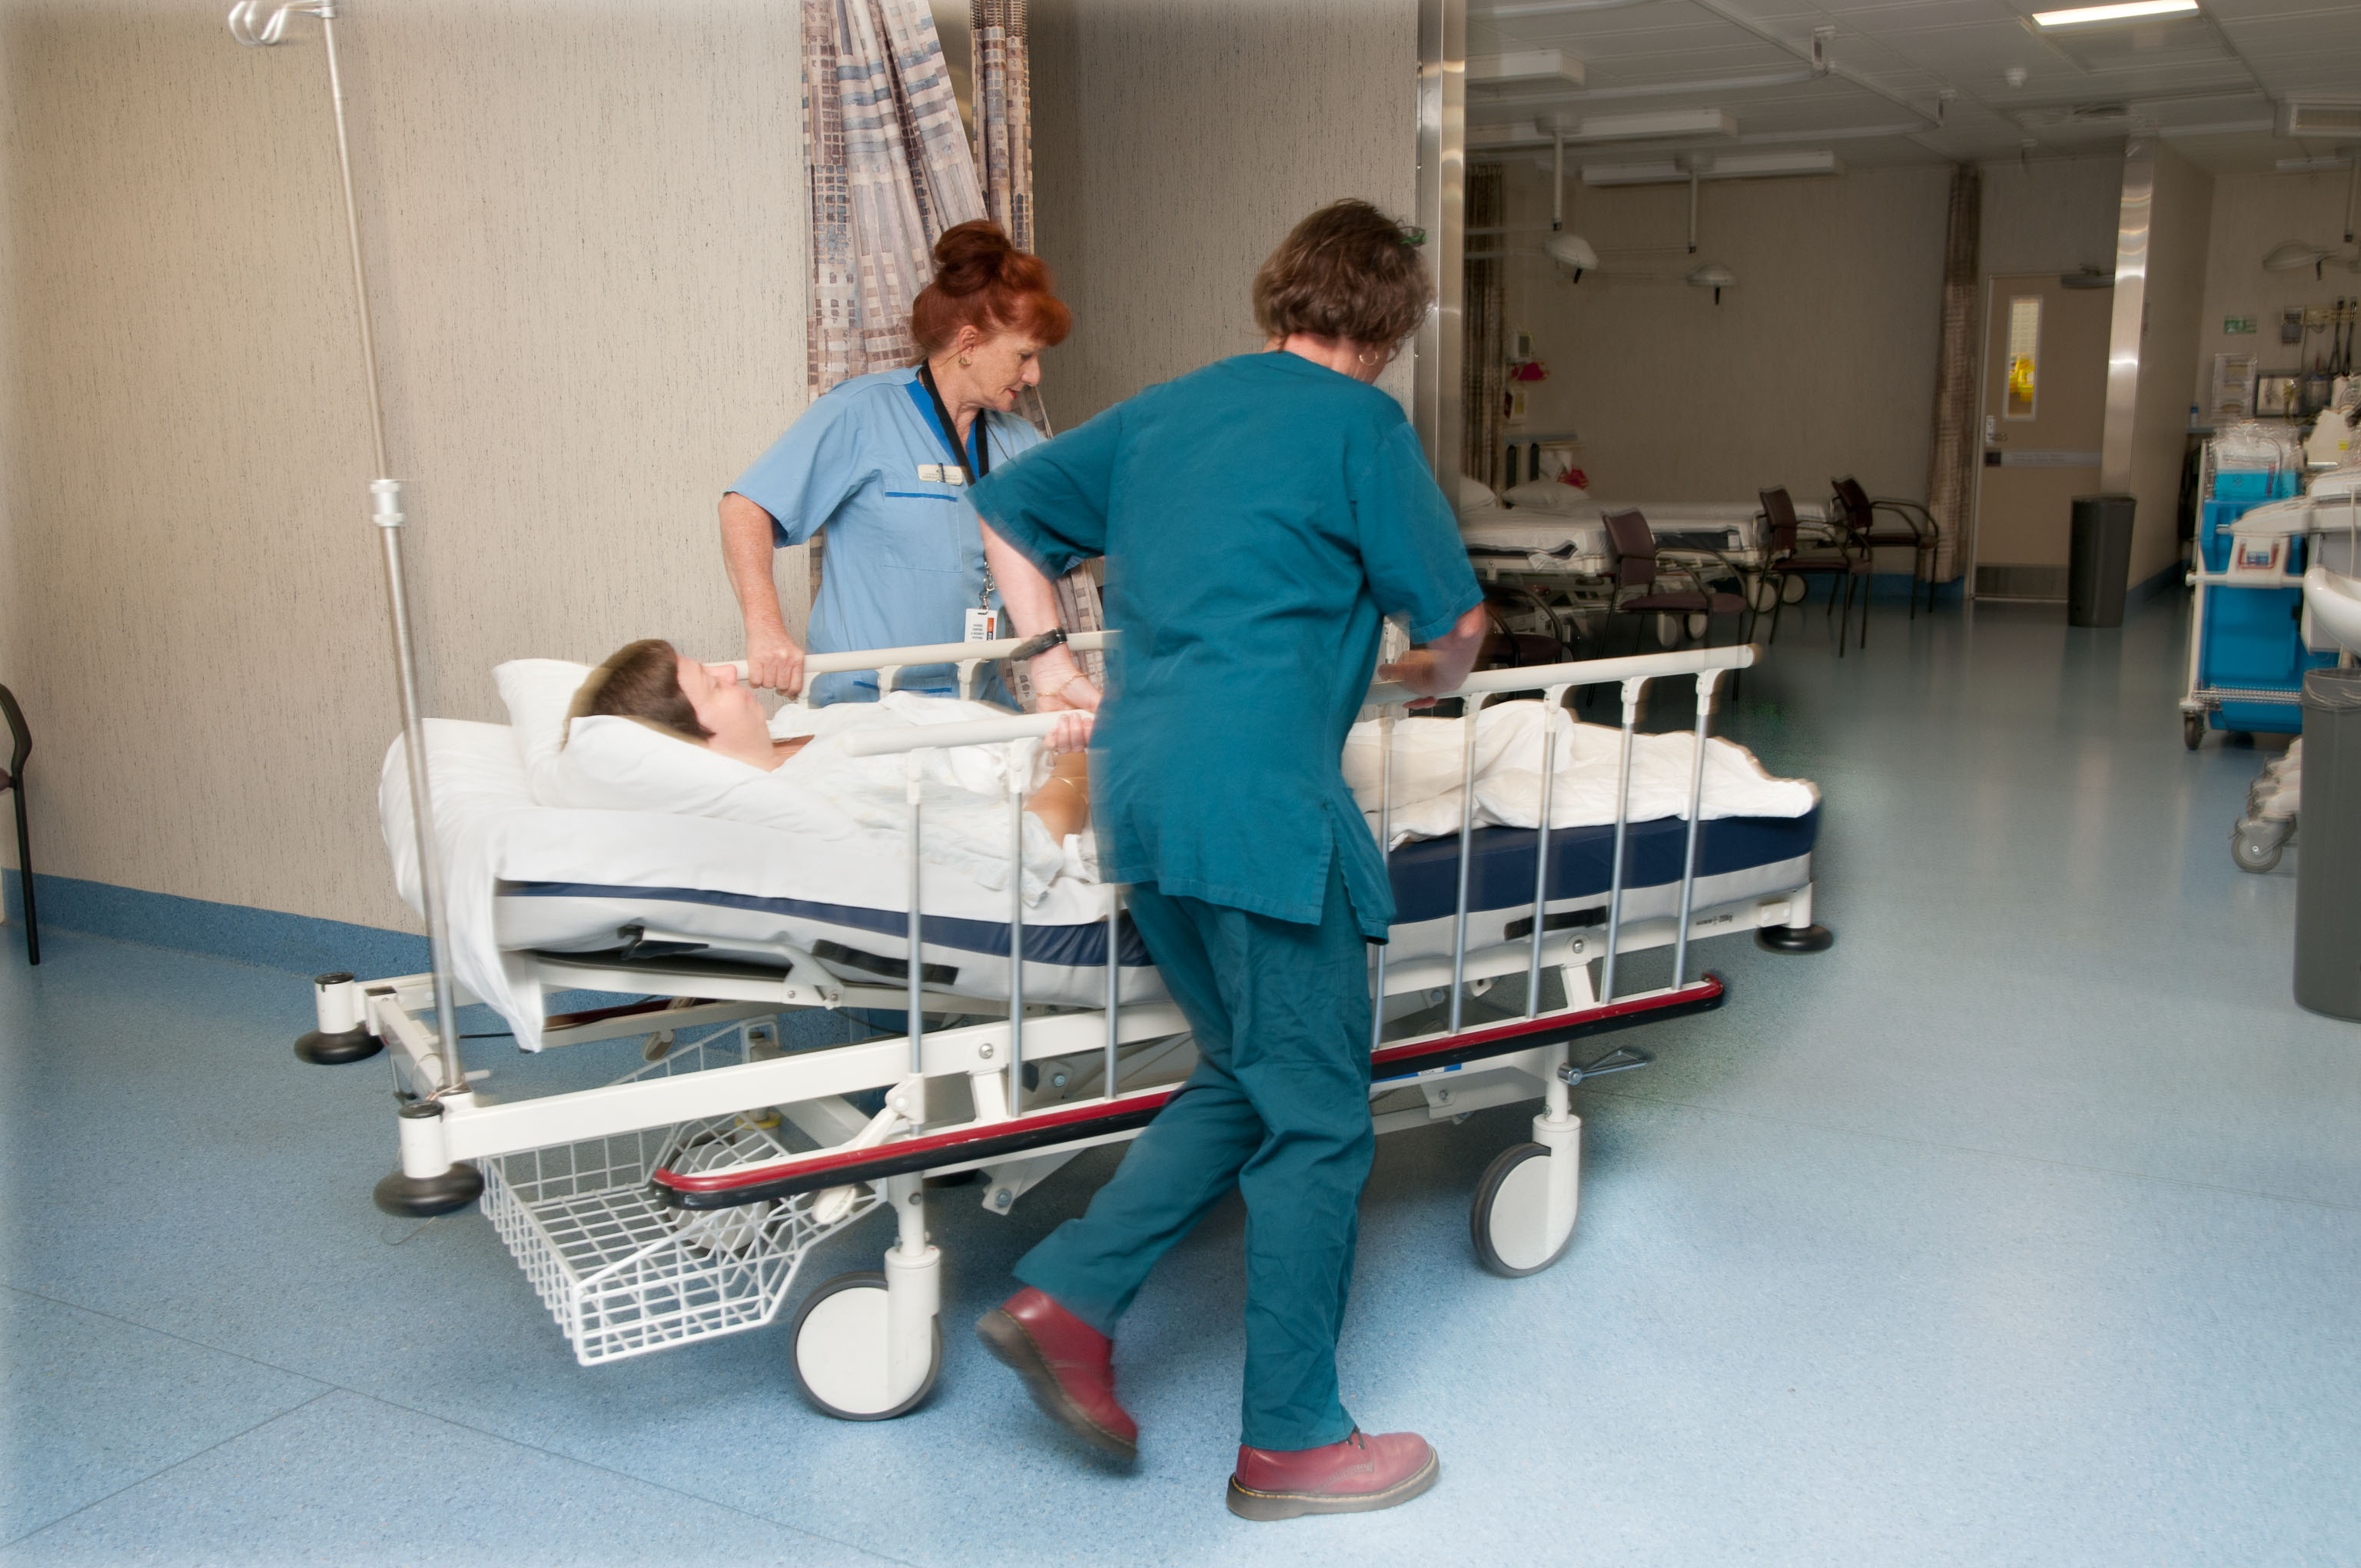 Nurse and Hspital Aide moving a patient.jpg